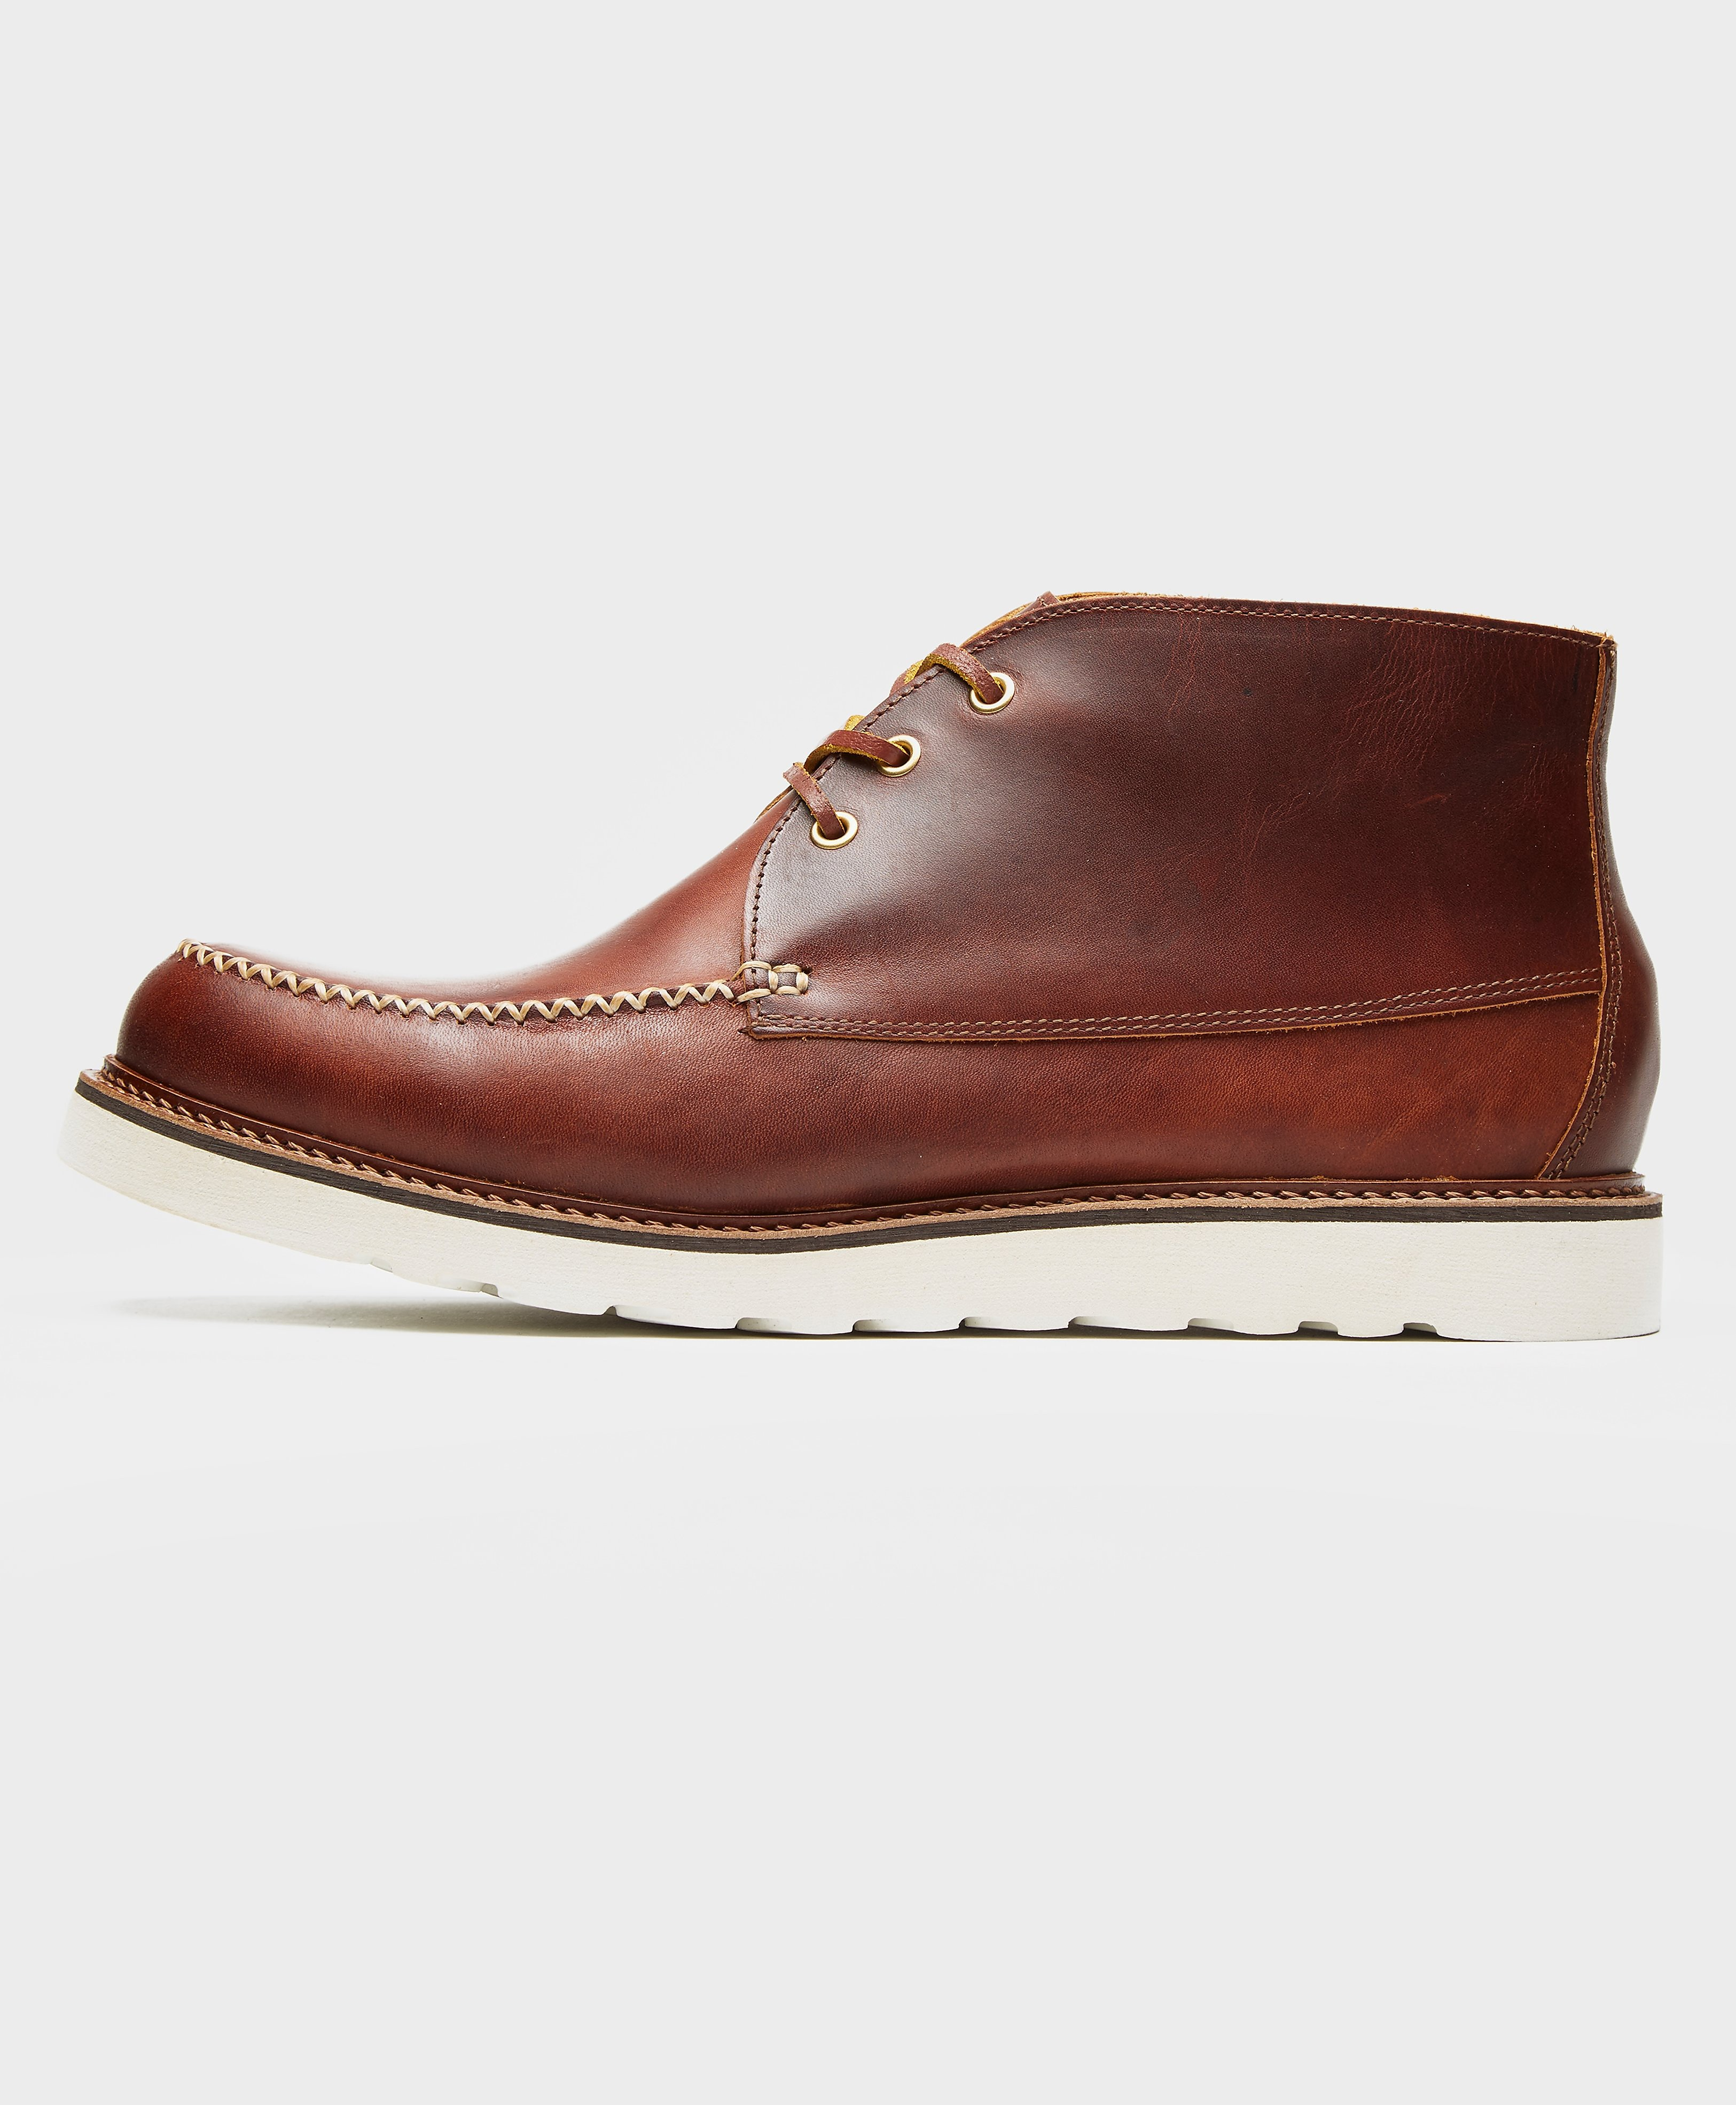 McKenzie Boston Chukka